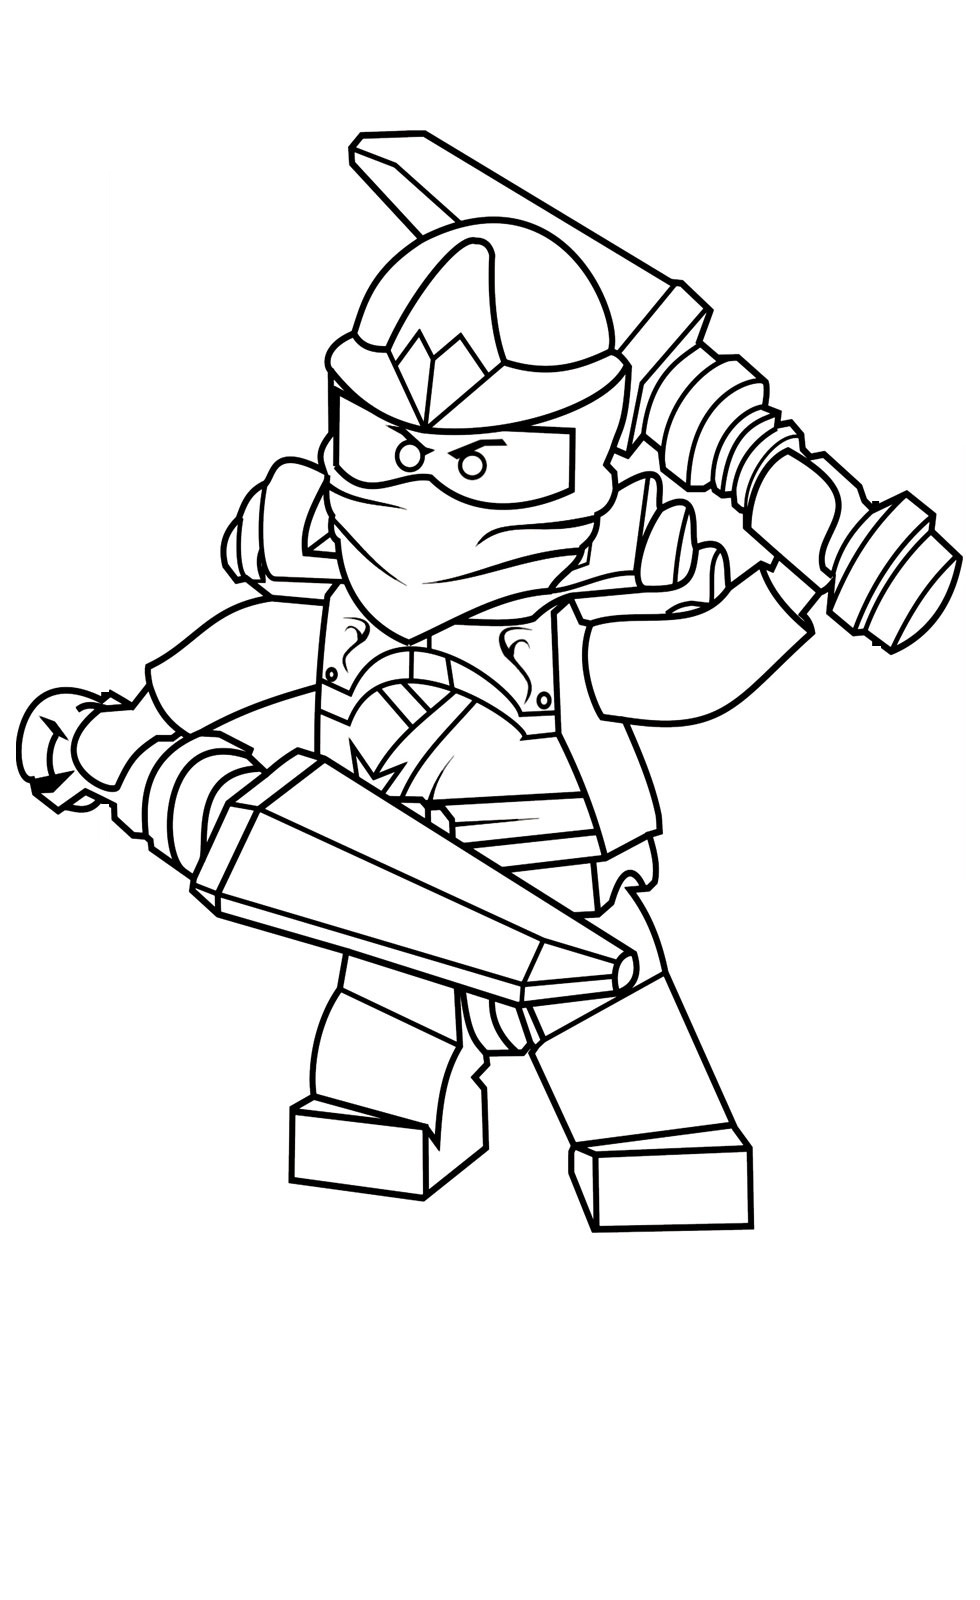 Ninjago coloring pages printable